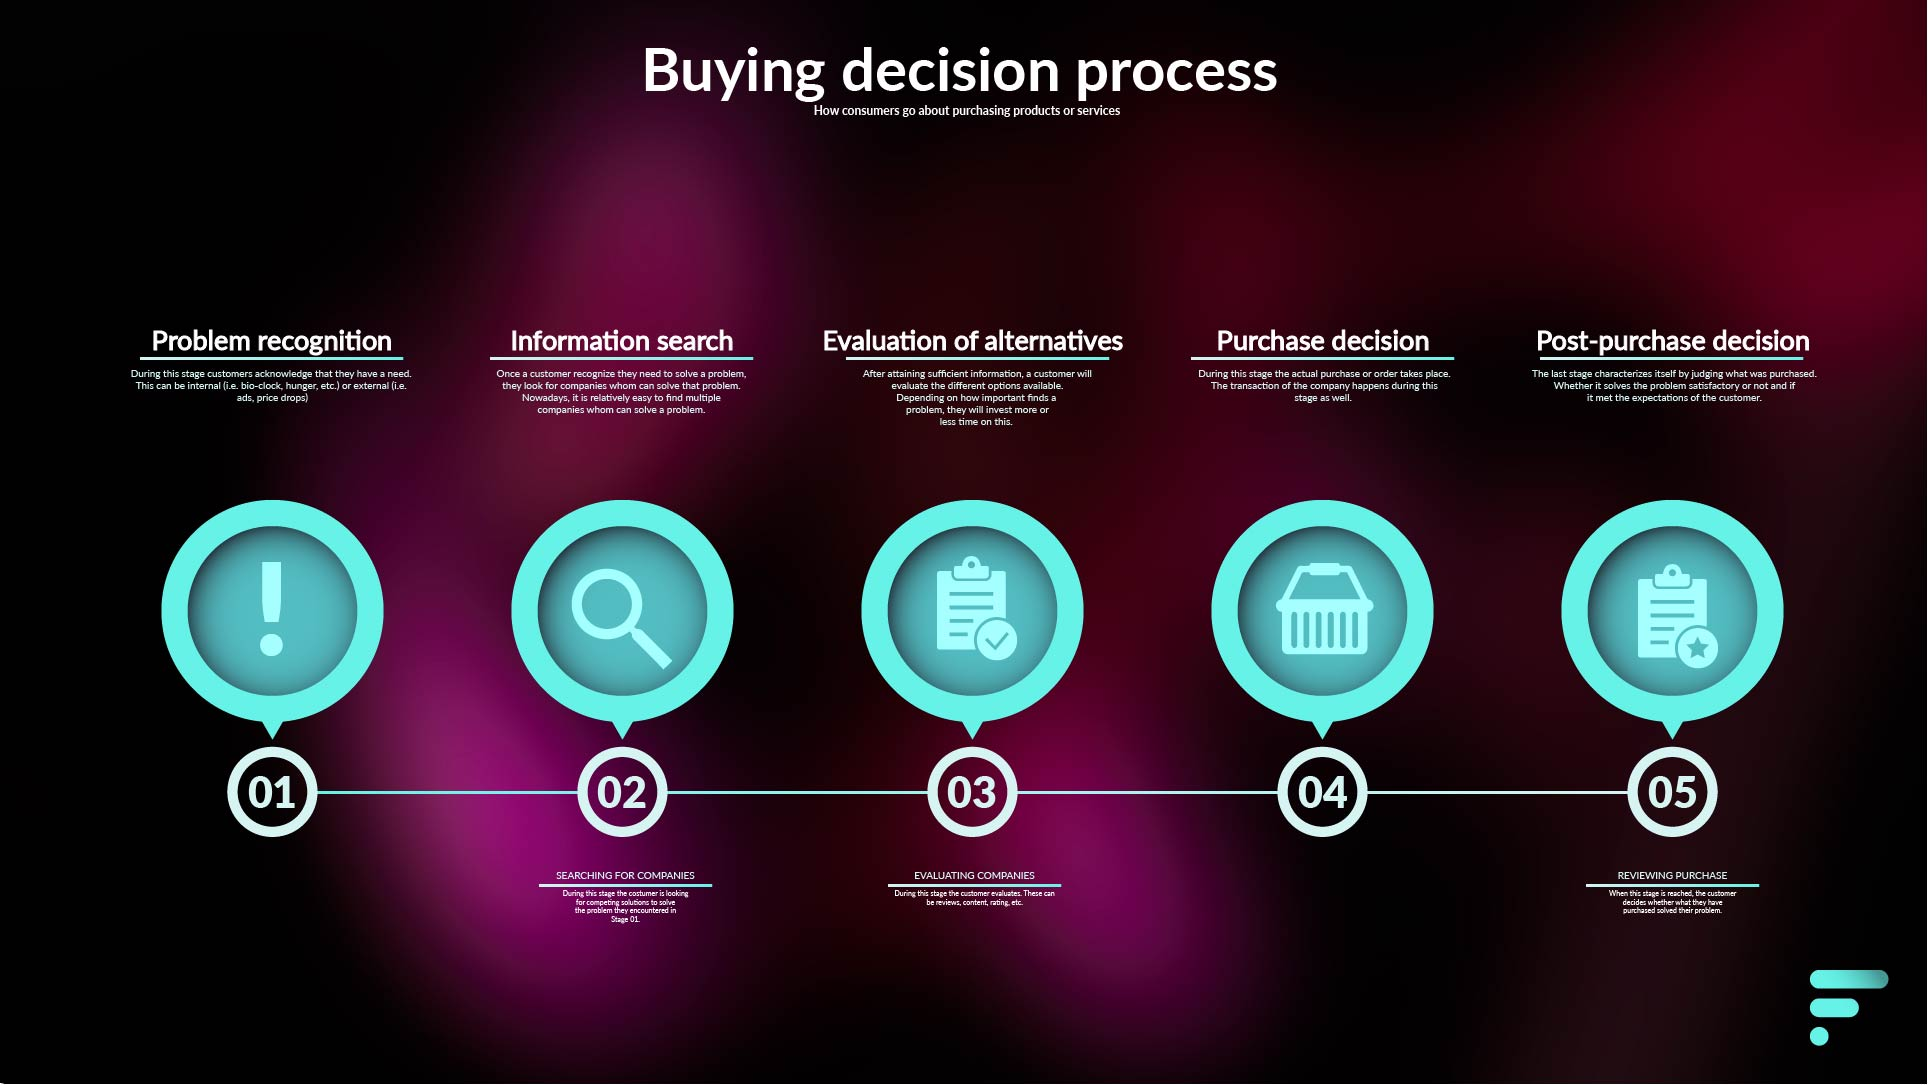 Buying decision process model